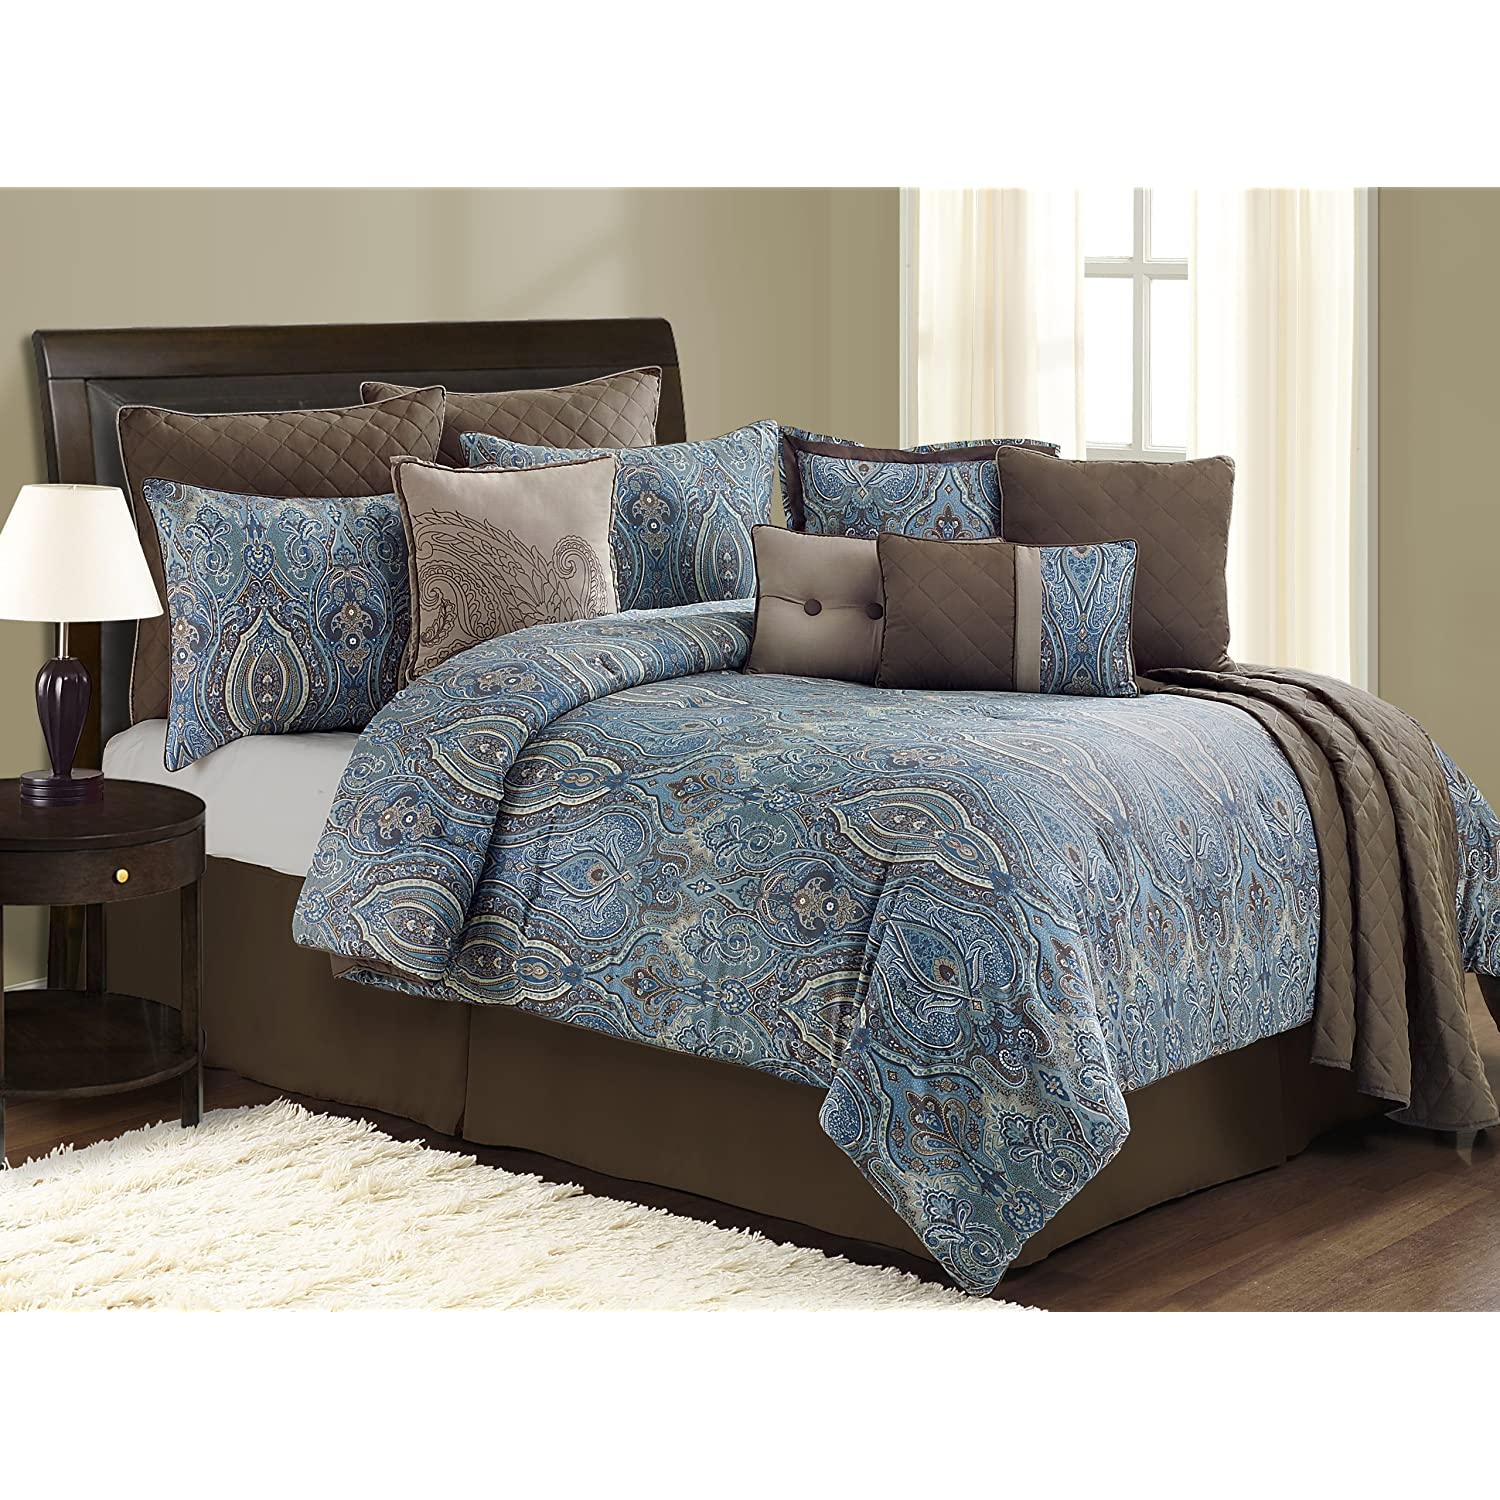 Comforter Sets Overstockcom Buy Fashion Bedding Online